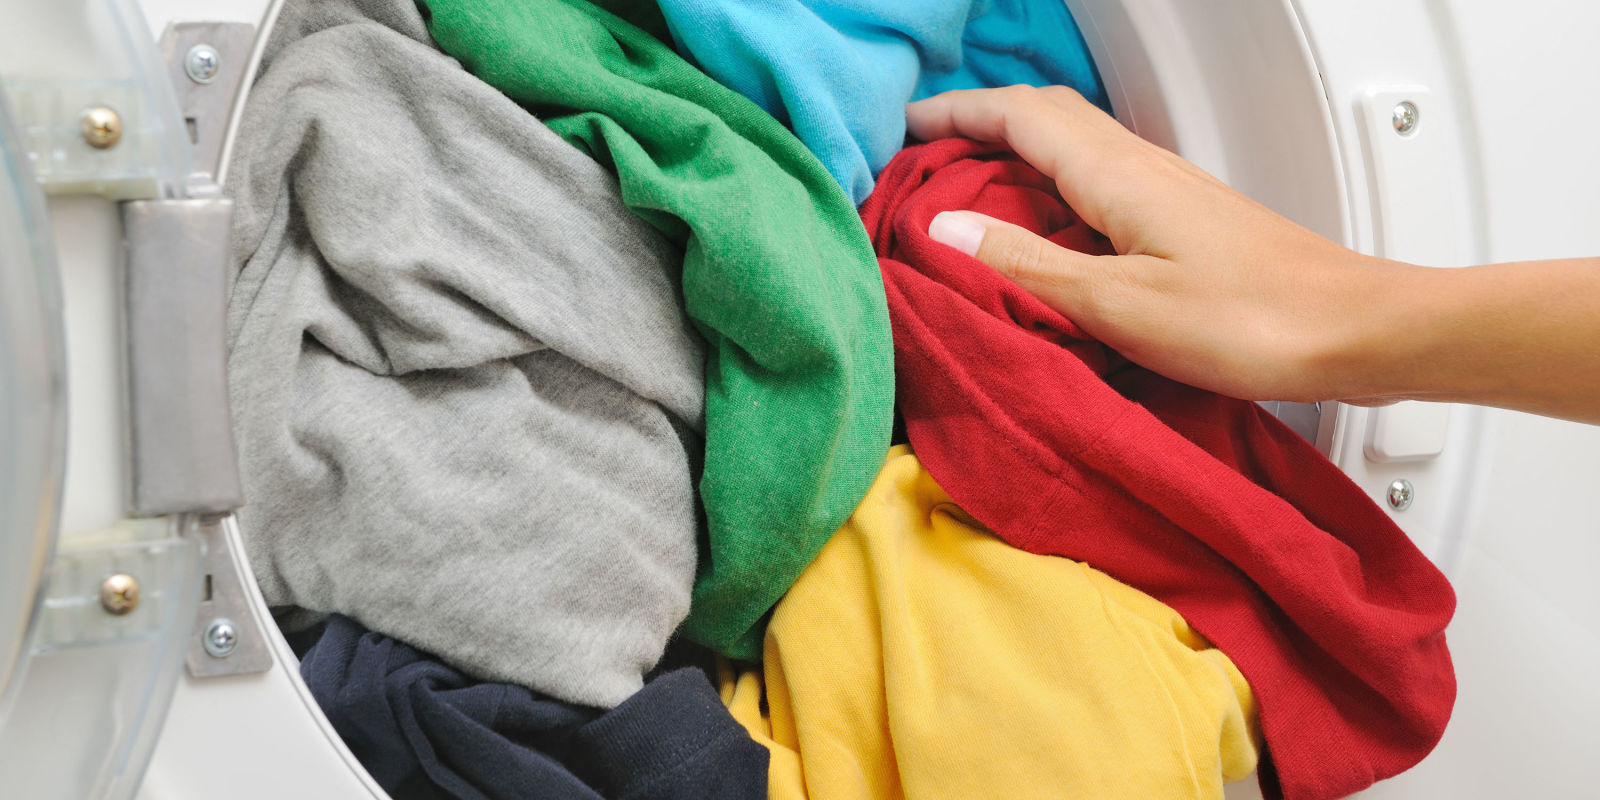 You 39 ve been washing your clothes all wrong says expert - Wrong wash clothesdegrees ...